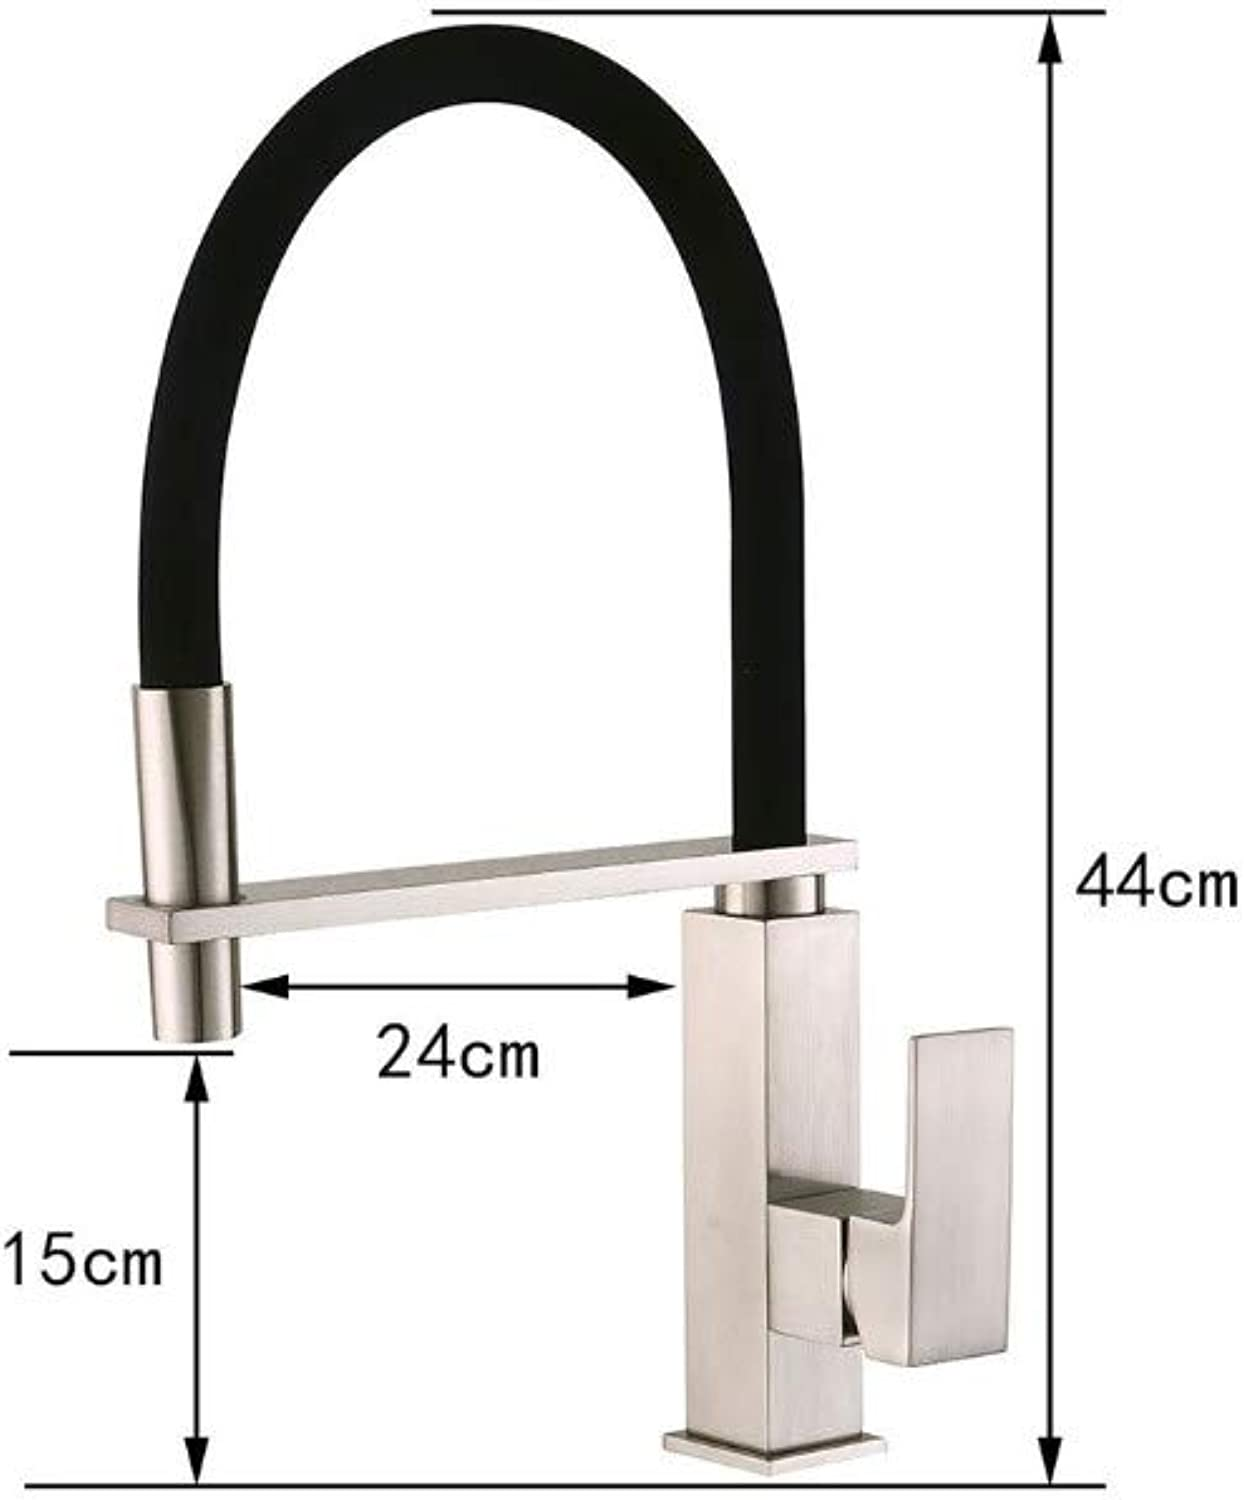 JONTON Bathroom Sink Taps Taps Brushed Kitchen Faucet European Retro Hot And Cold Water Faucet redating Spring Faucet Pull Faucet